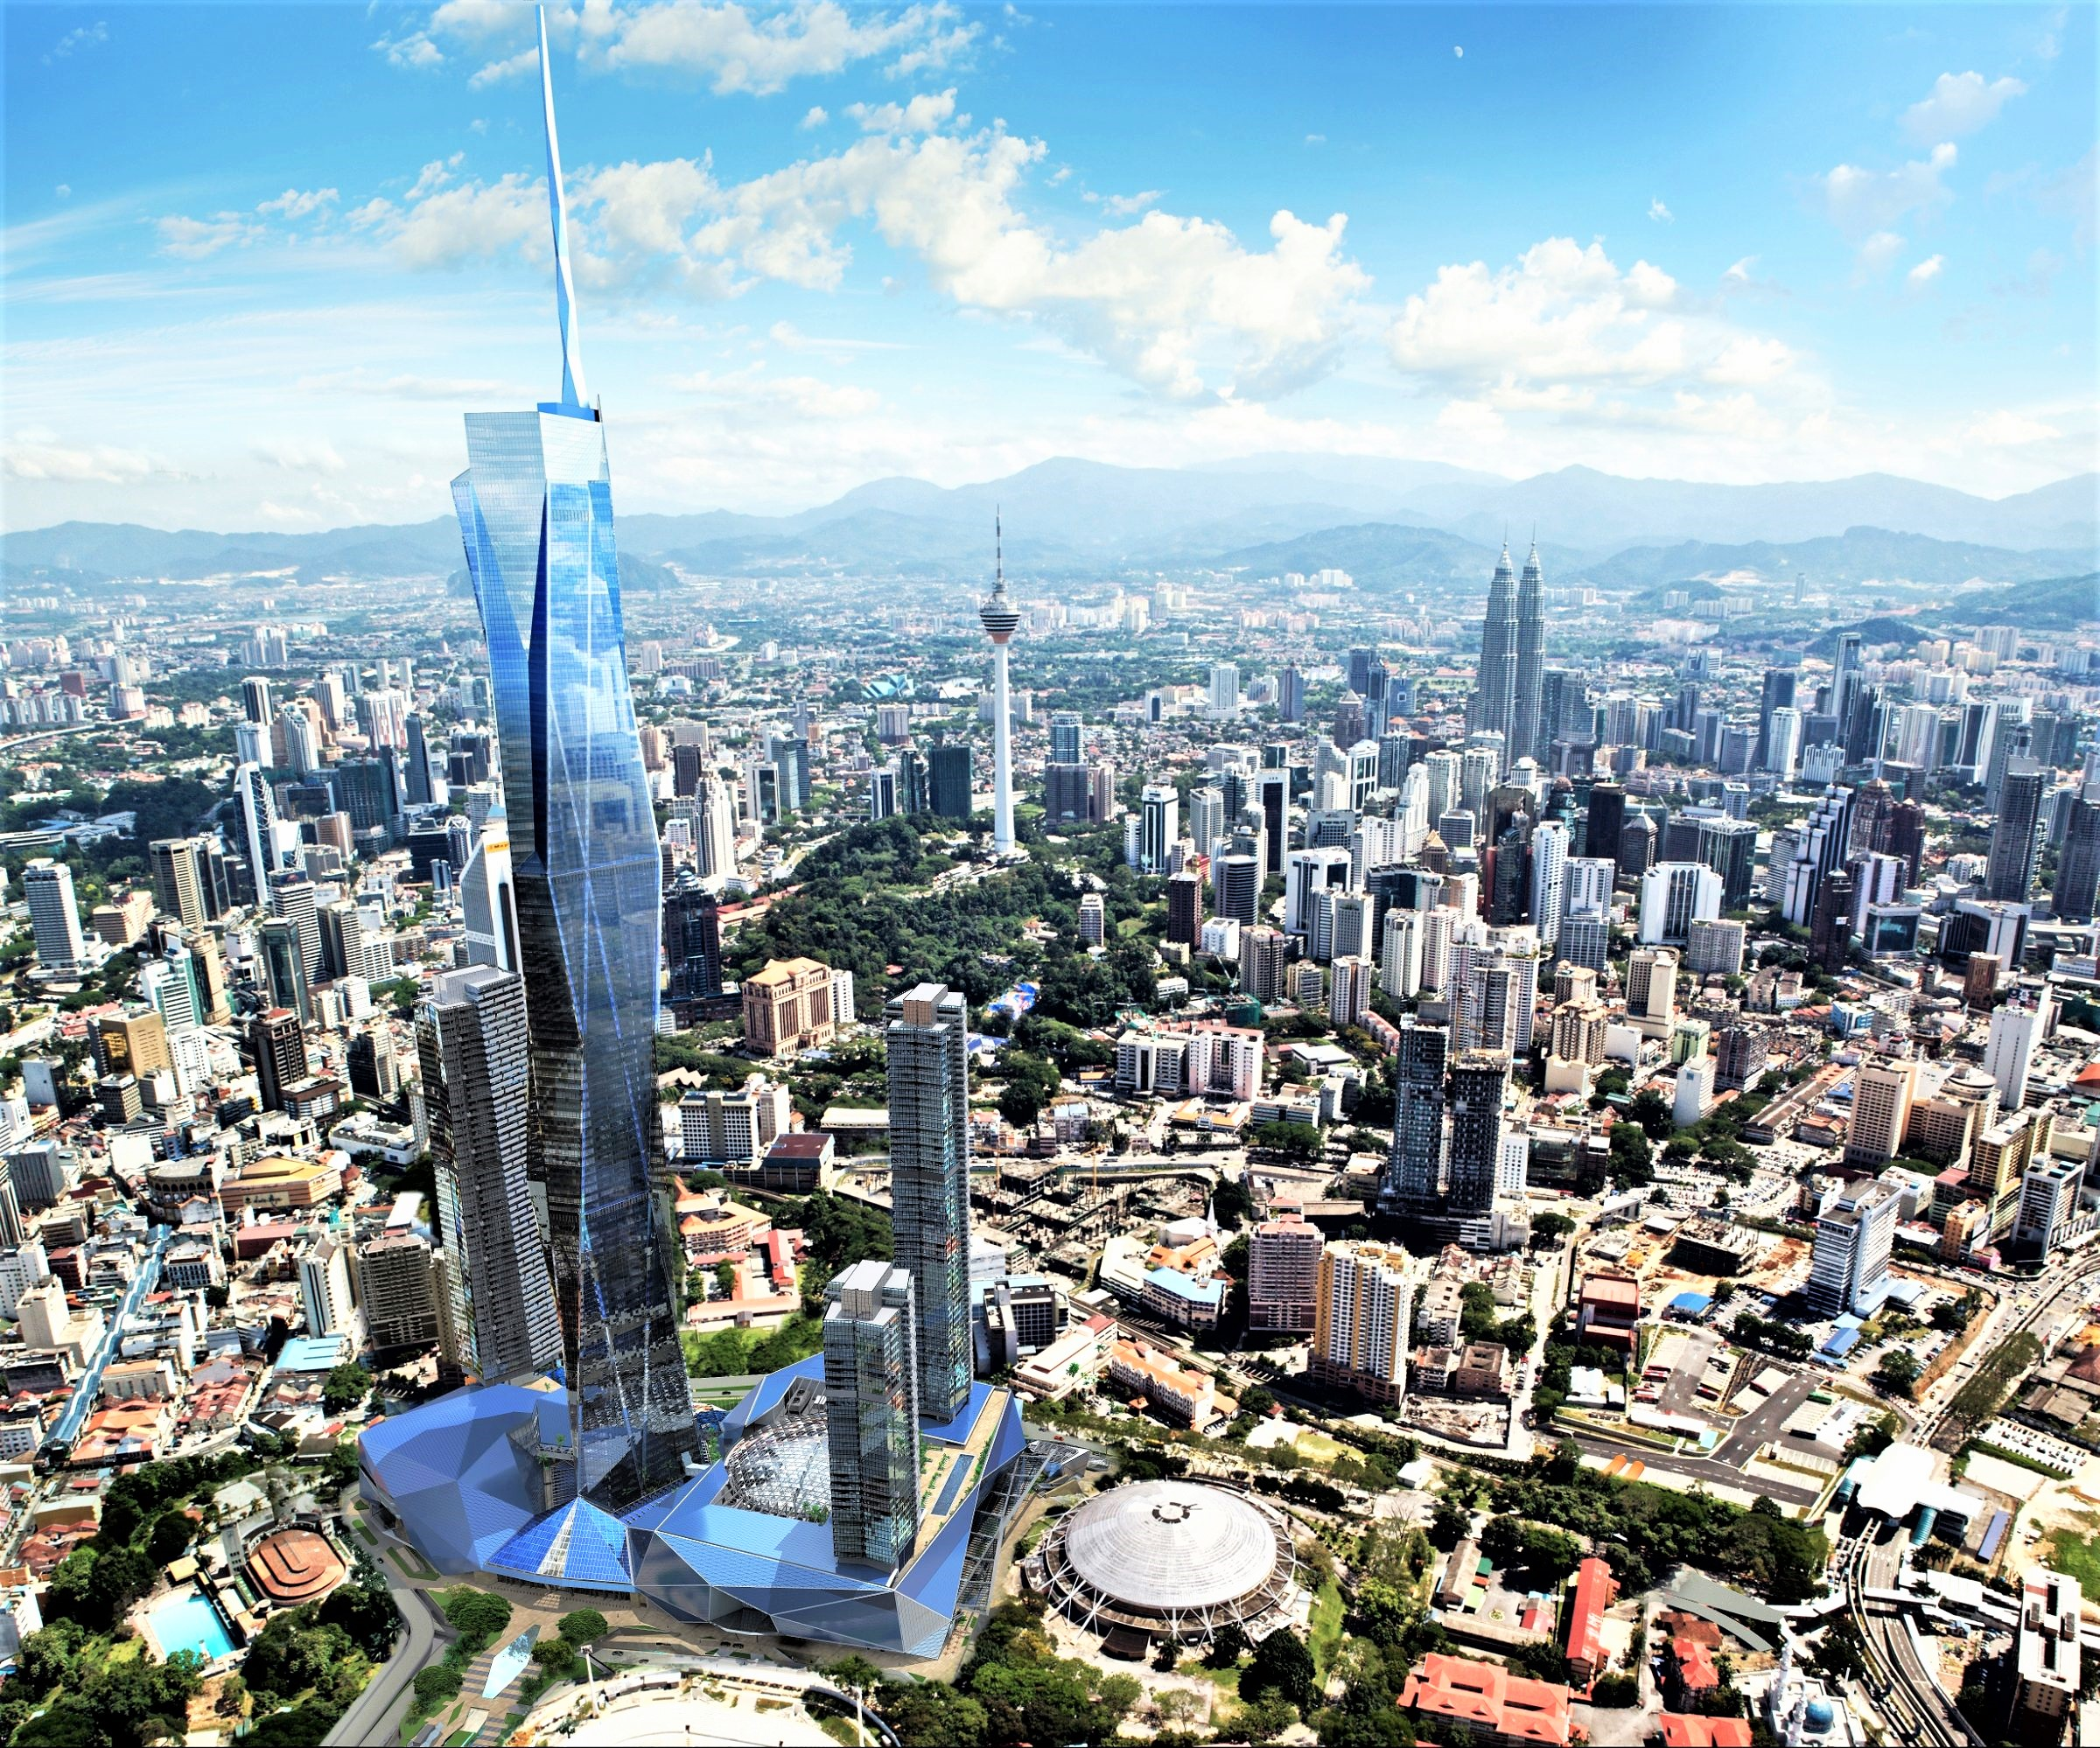 World's second tallest tower back on track